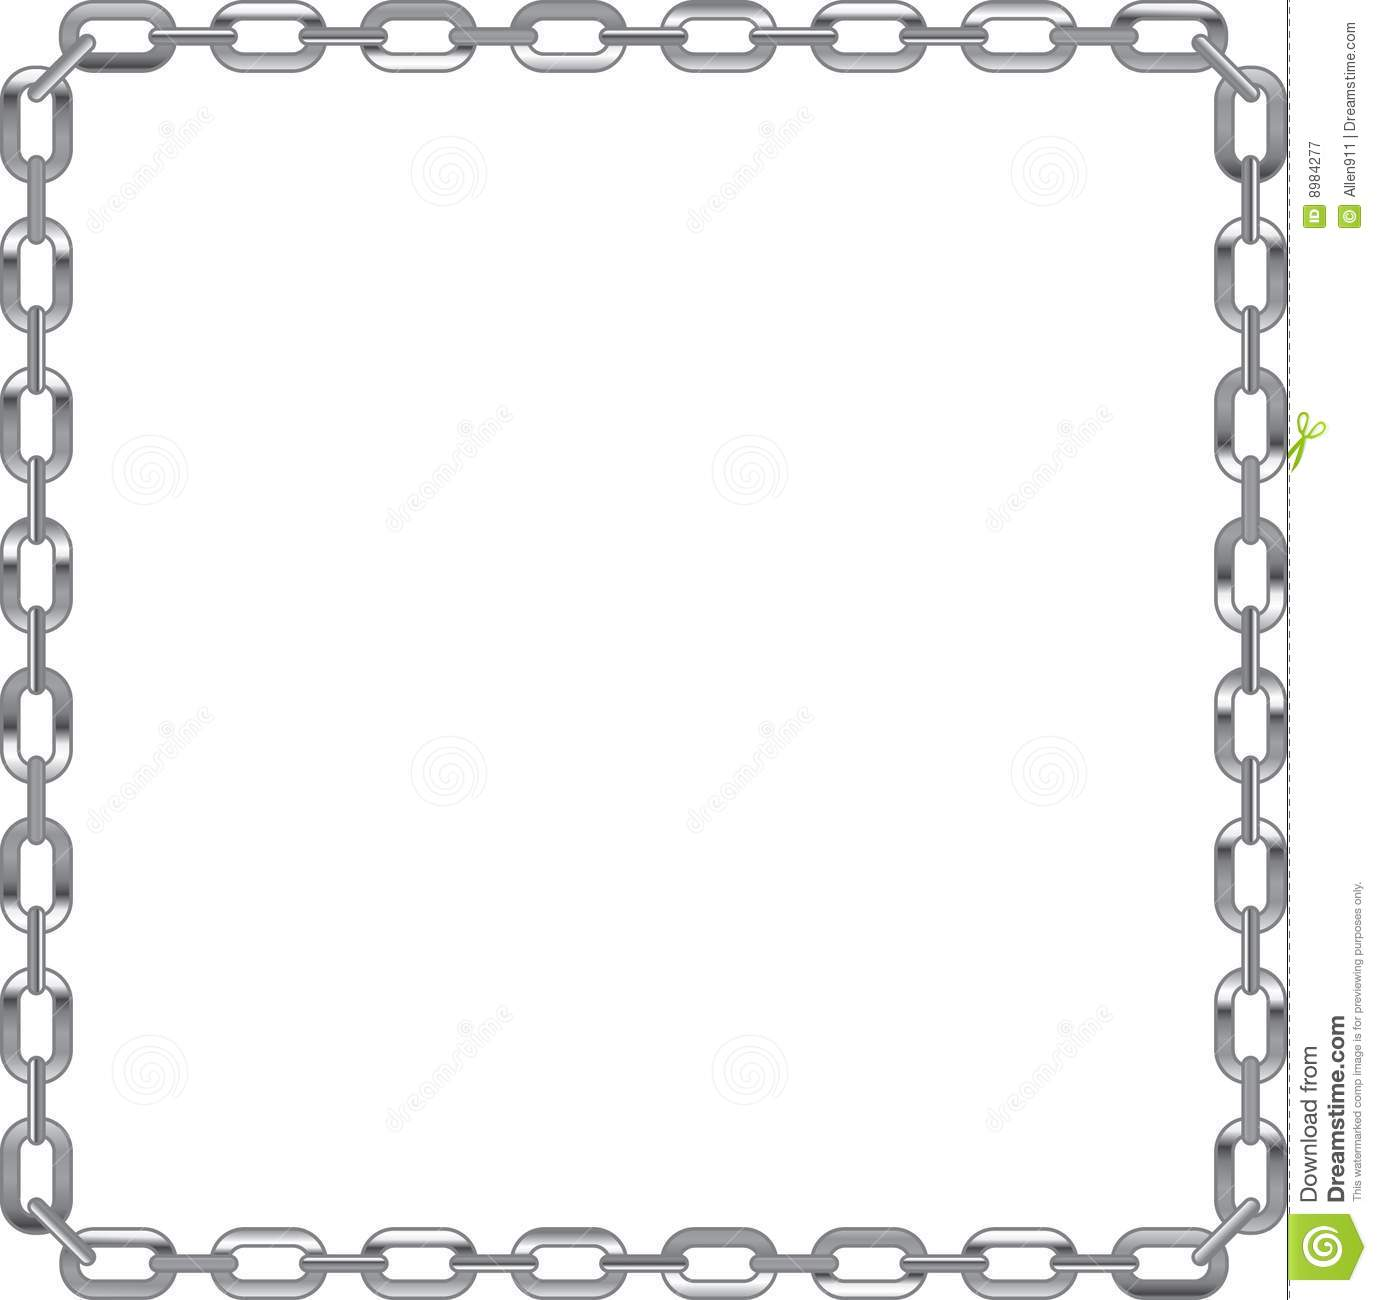 Chain Link Frame On White Background Royalty Free Stock